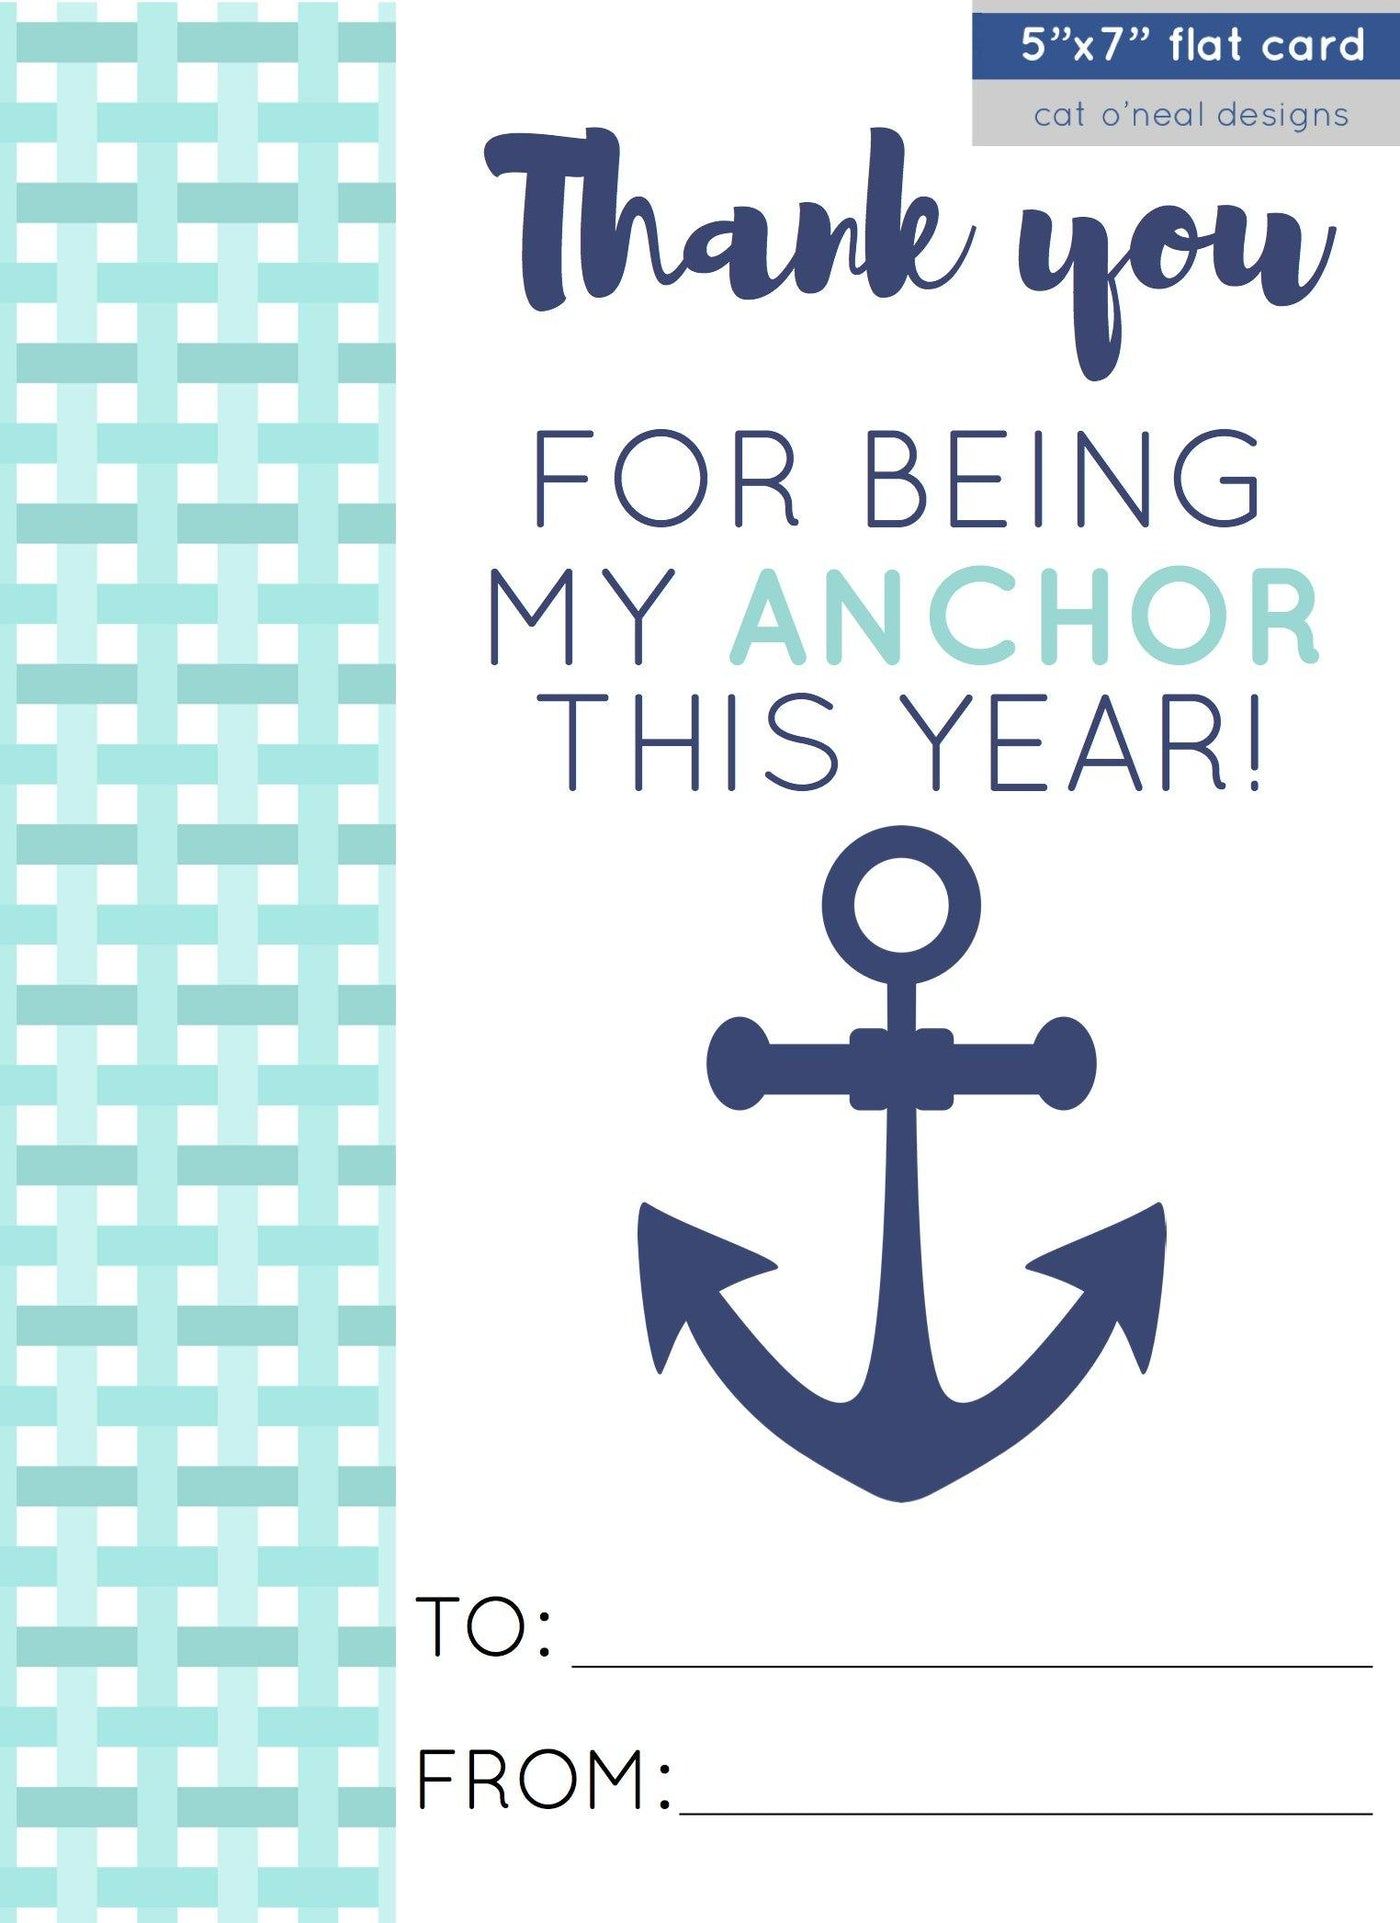 ADD-ON CARD || THANK YOU FOR BEING MY ANCHOR THIS YEAR!